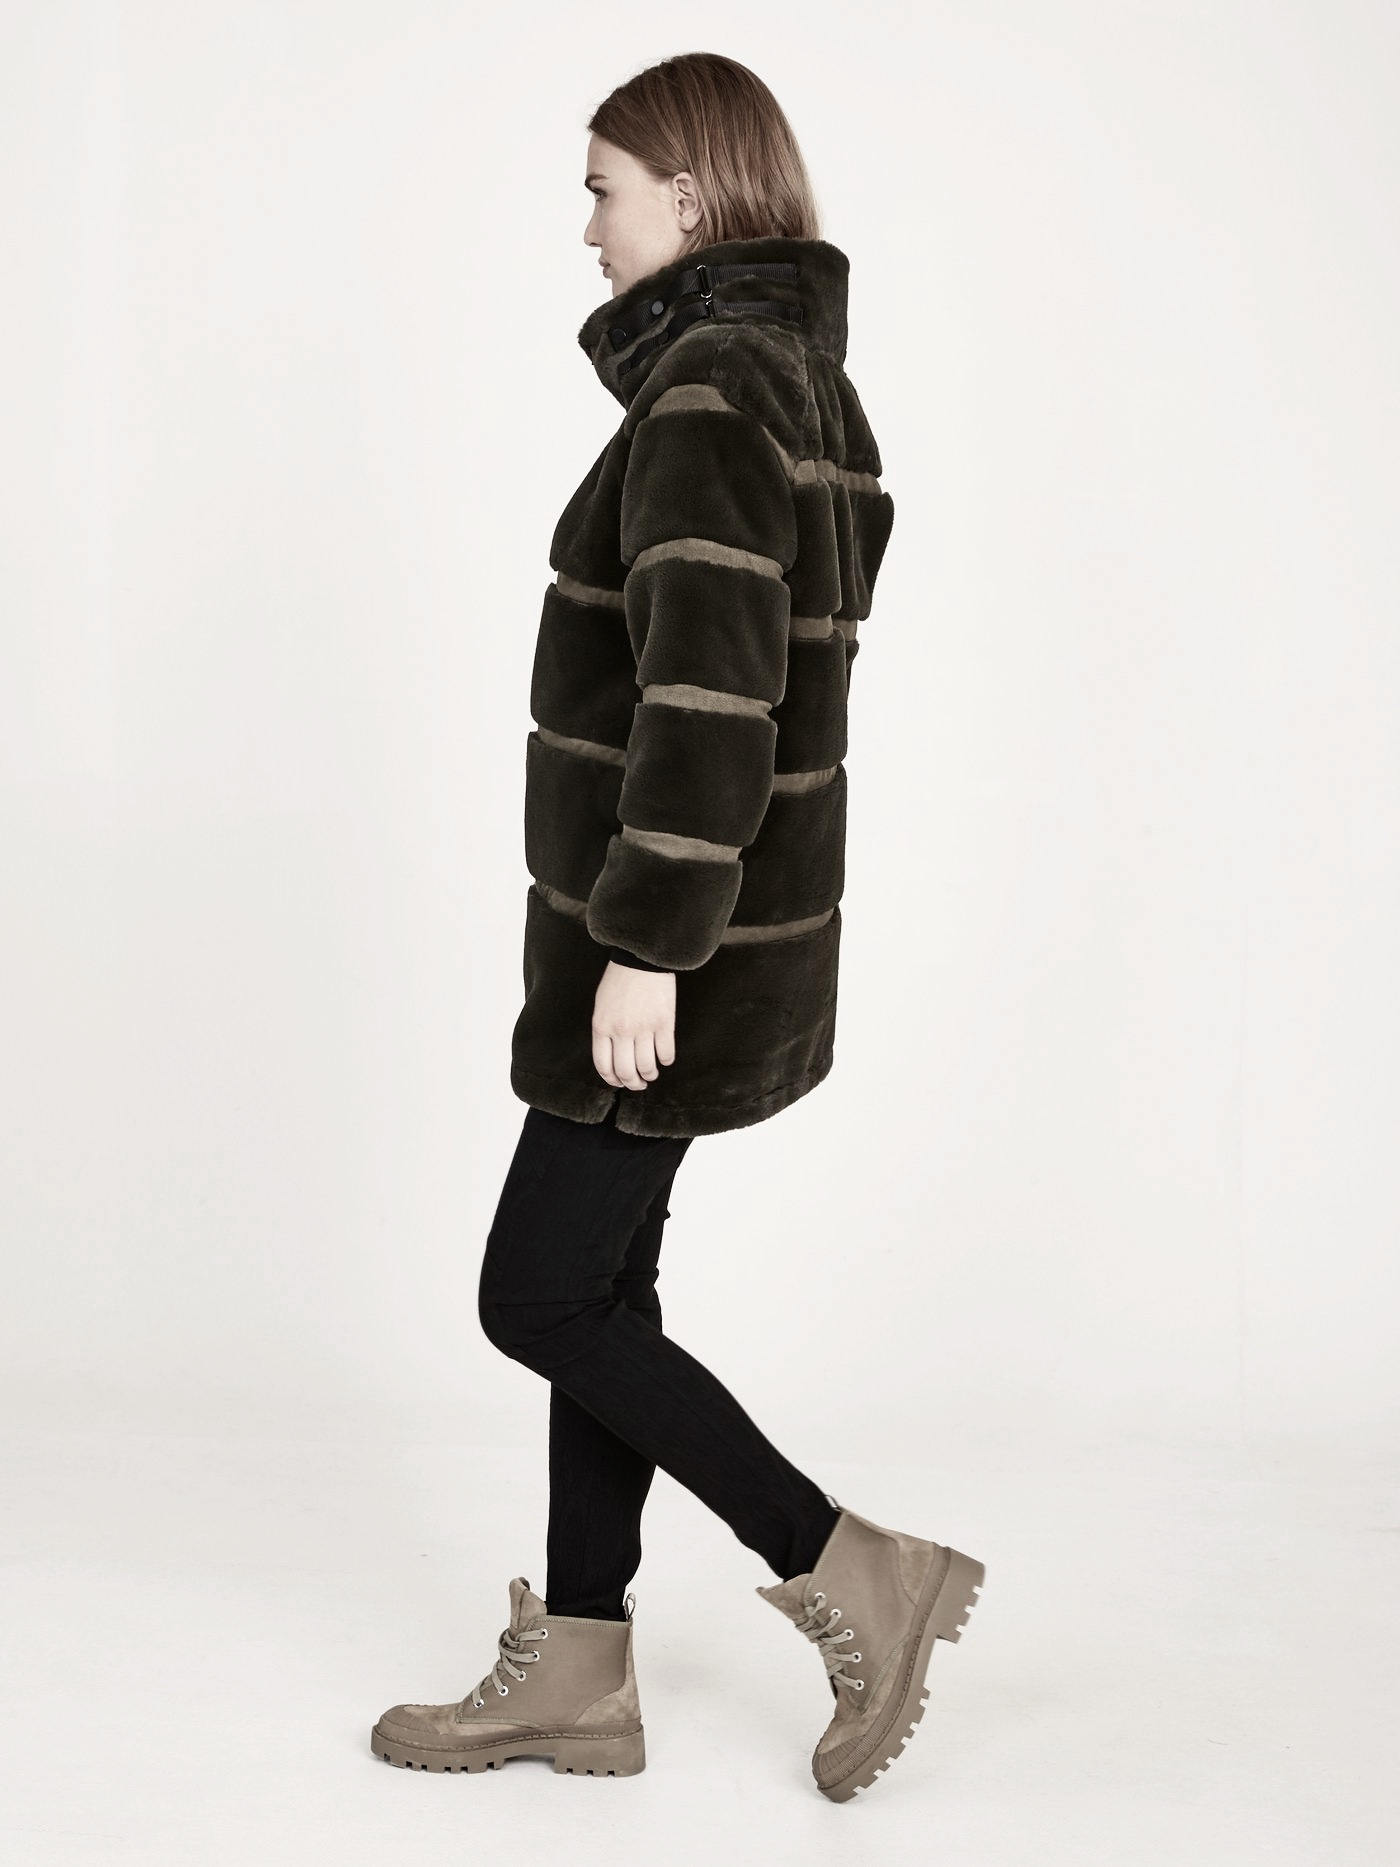 NÜ DENMARK EVELIN FAUX FUR JACKET DUST ARMY IMAGE BY ME